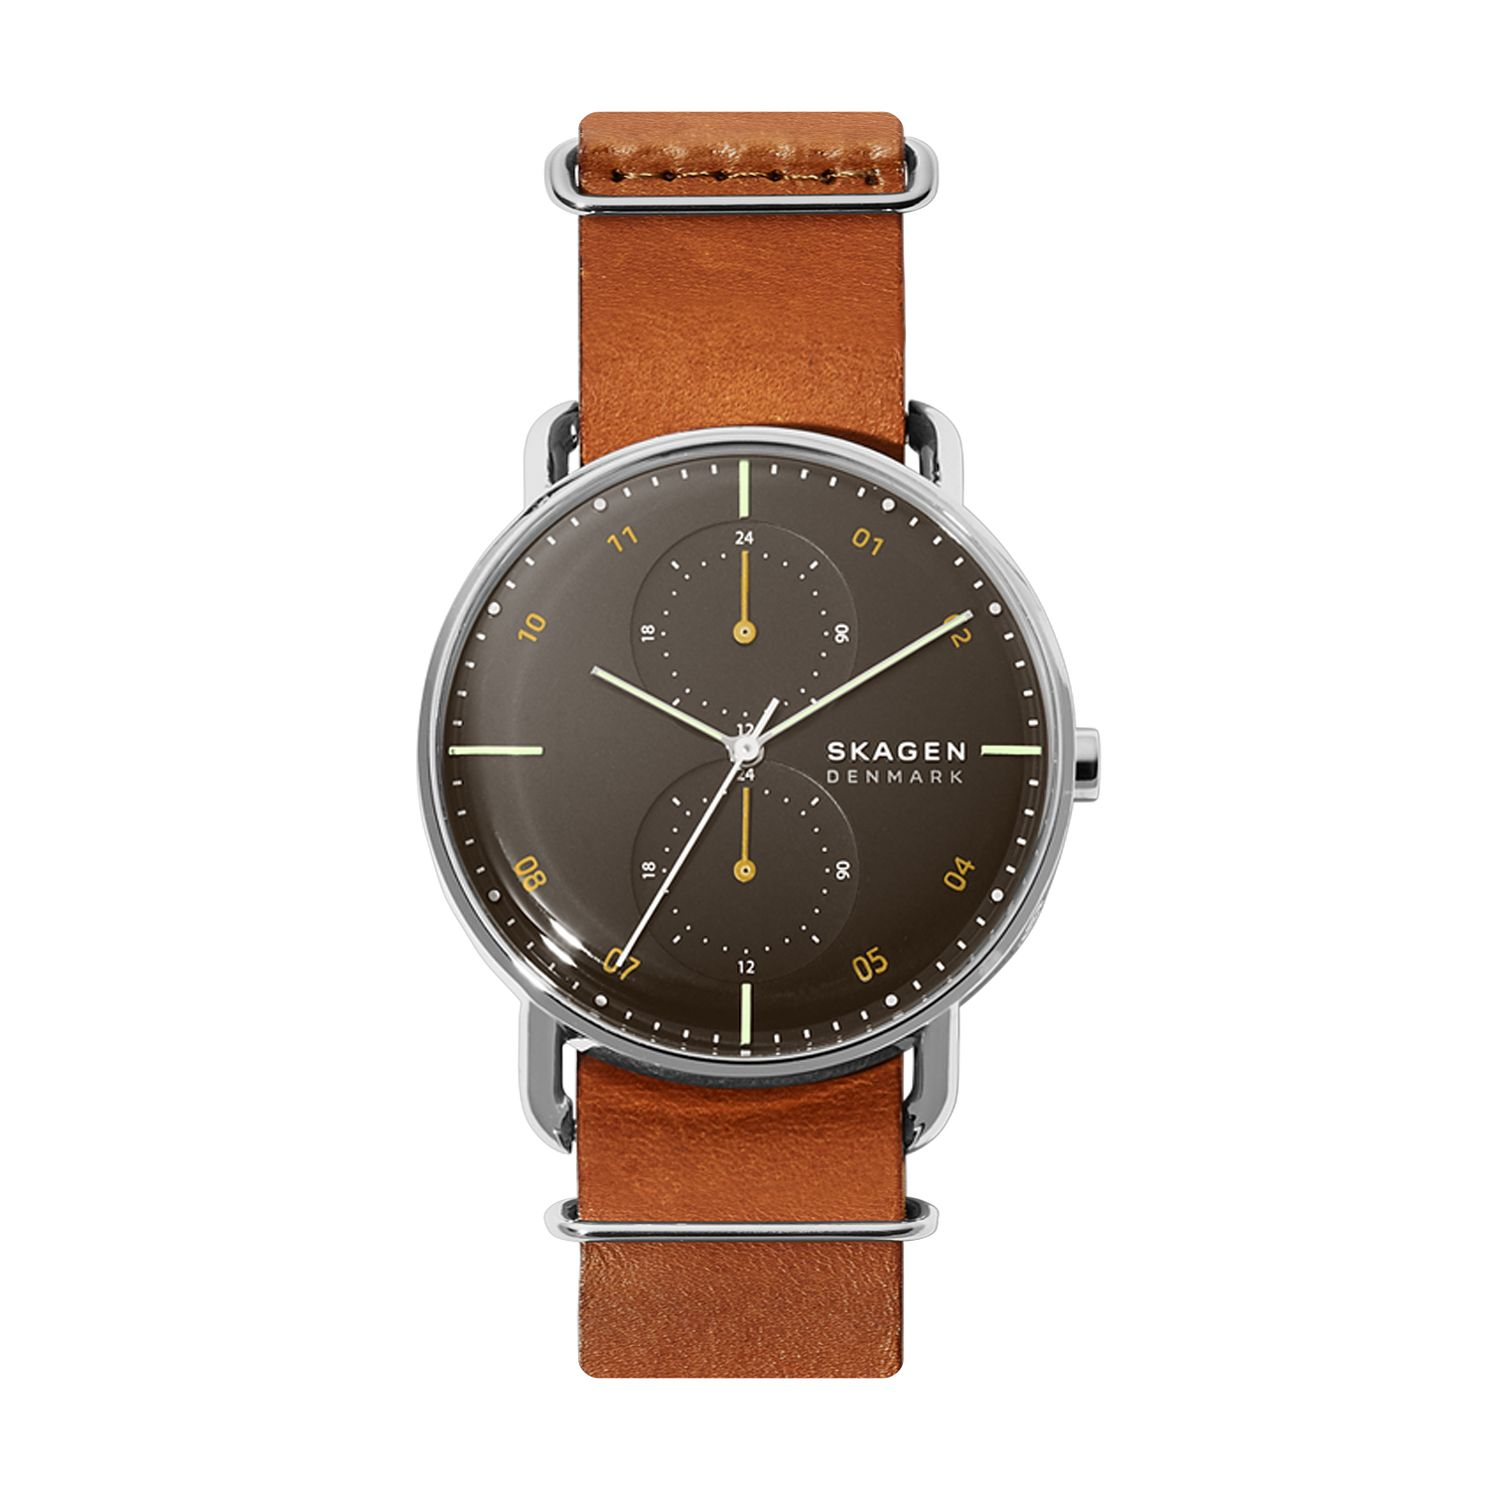 Skagen Horizont Men's Brown Leather Strap Watch - Product number 4721187